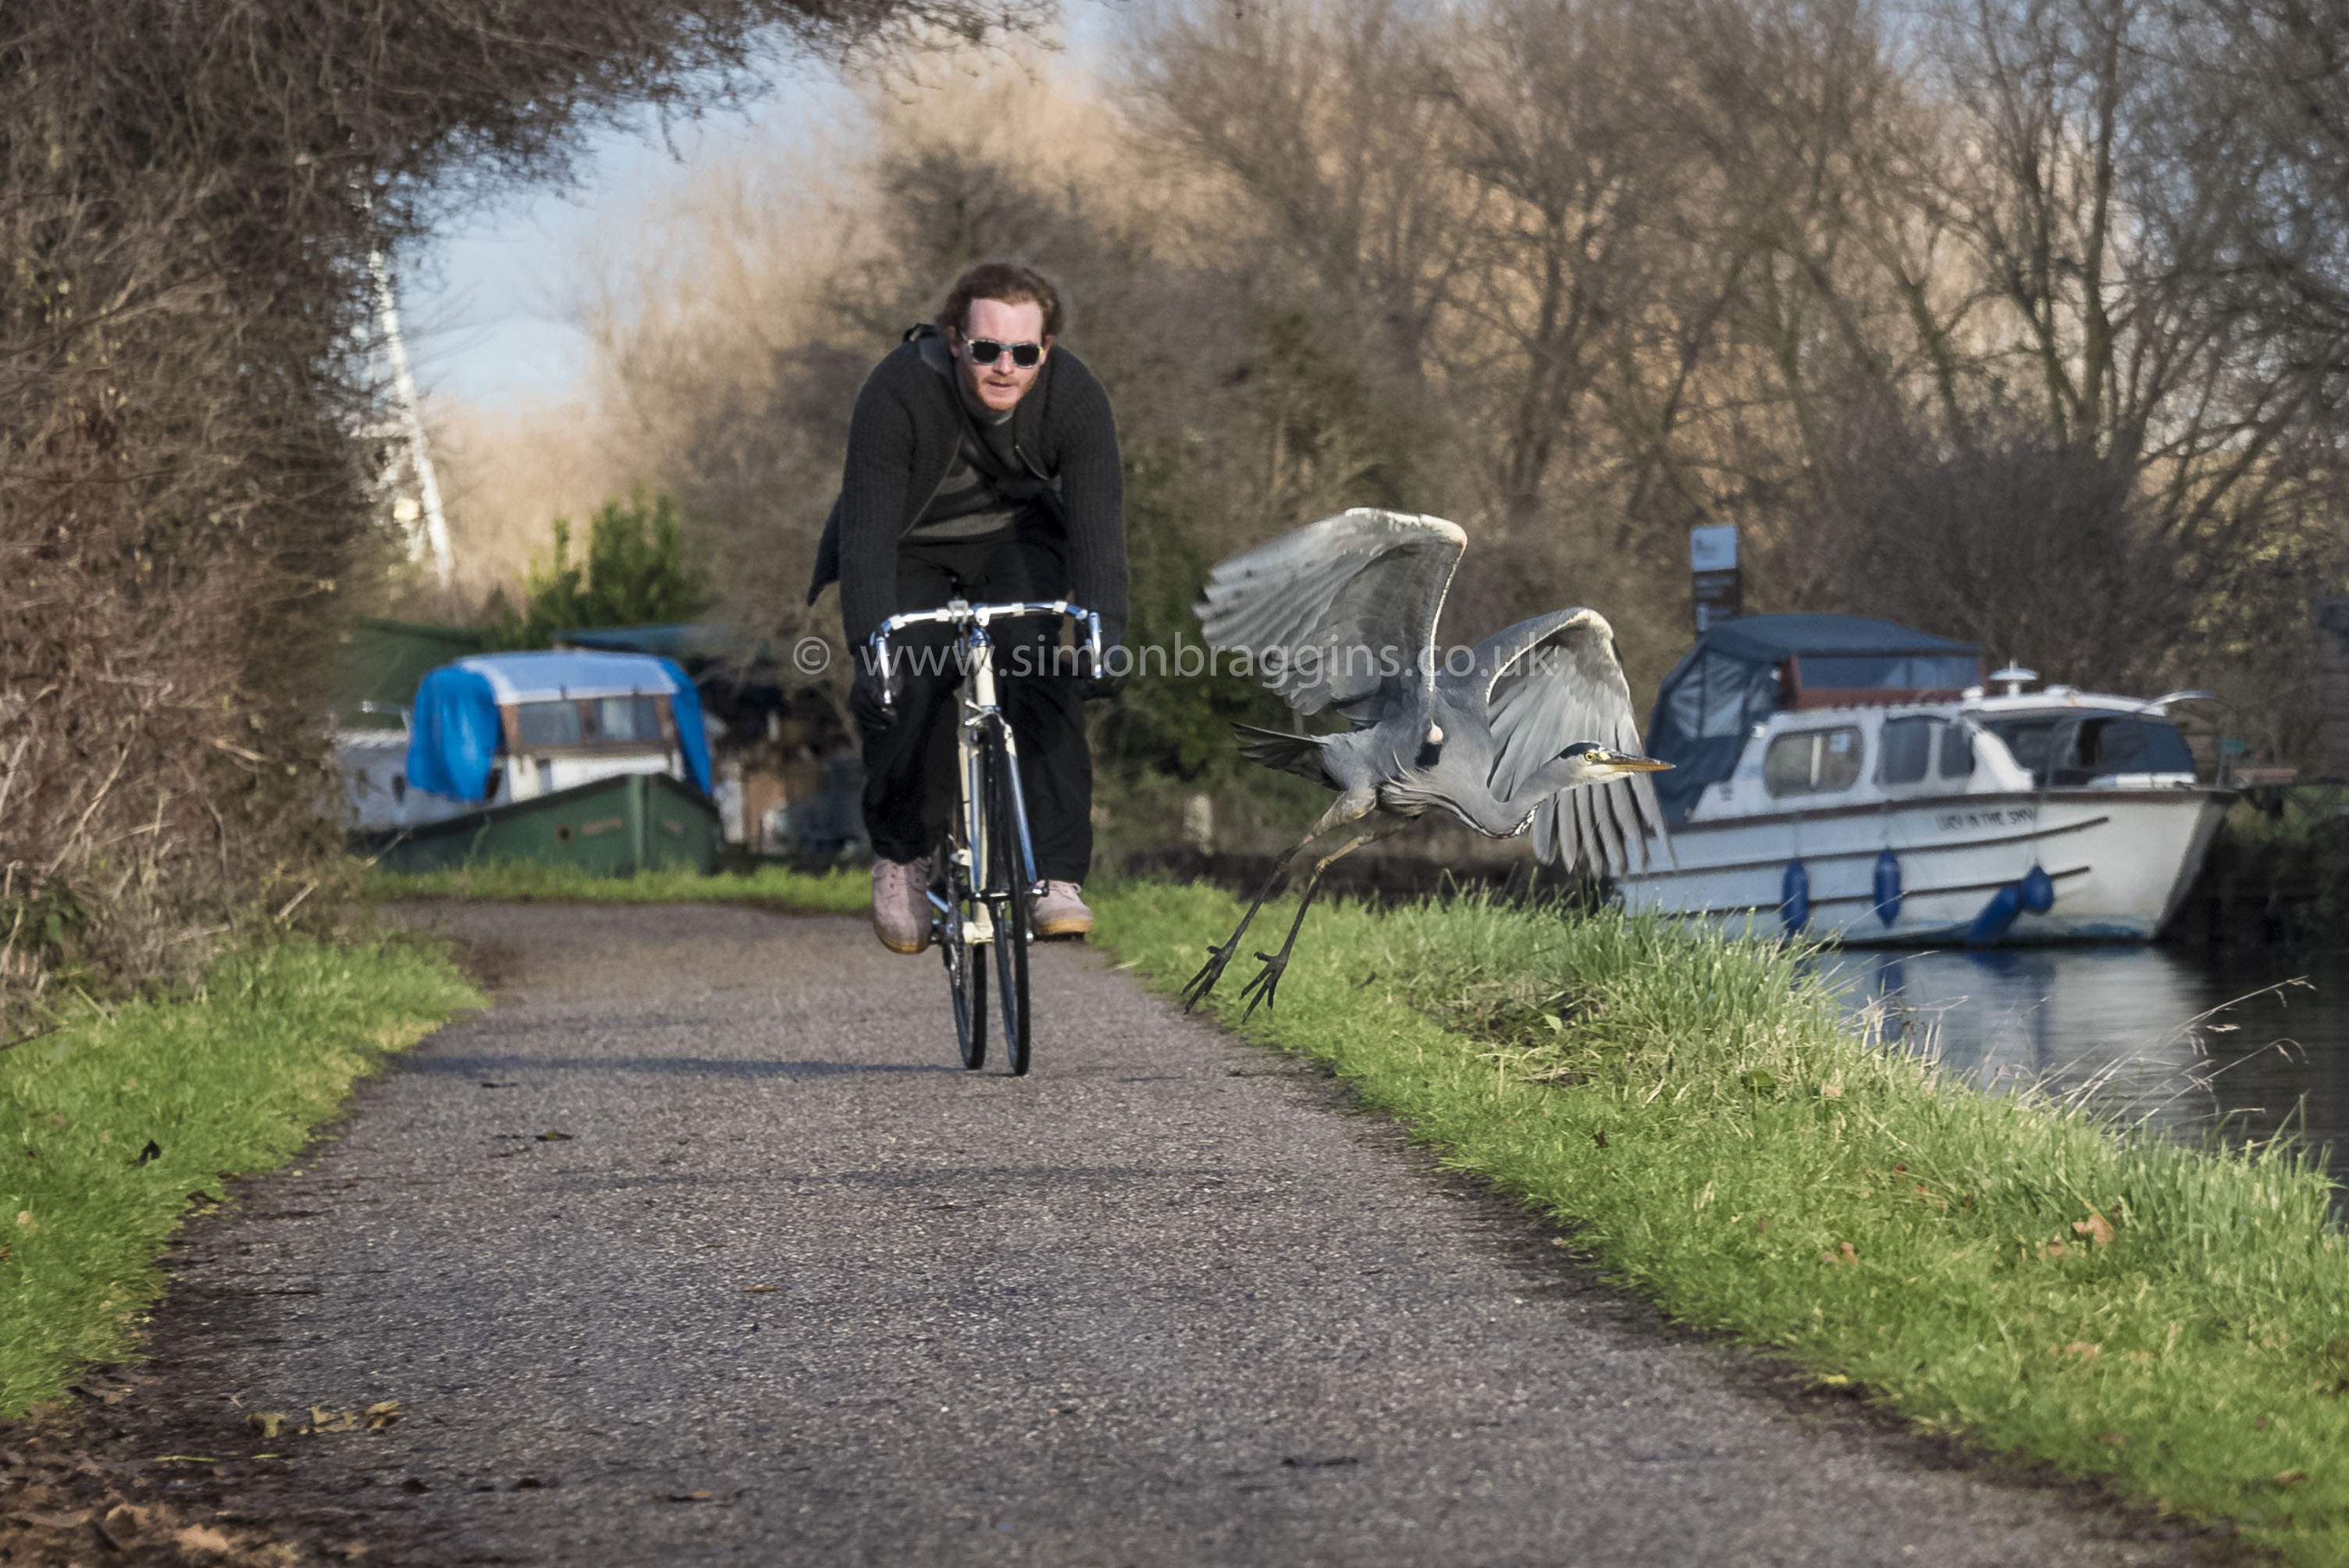 Outta the way: A heron takes no chances with a fast cyclist, Tottenham Hale, December 2017